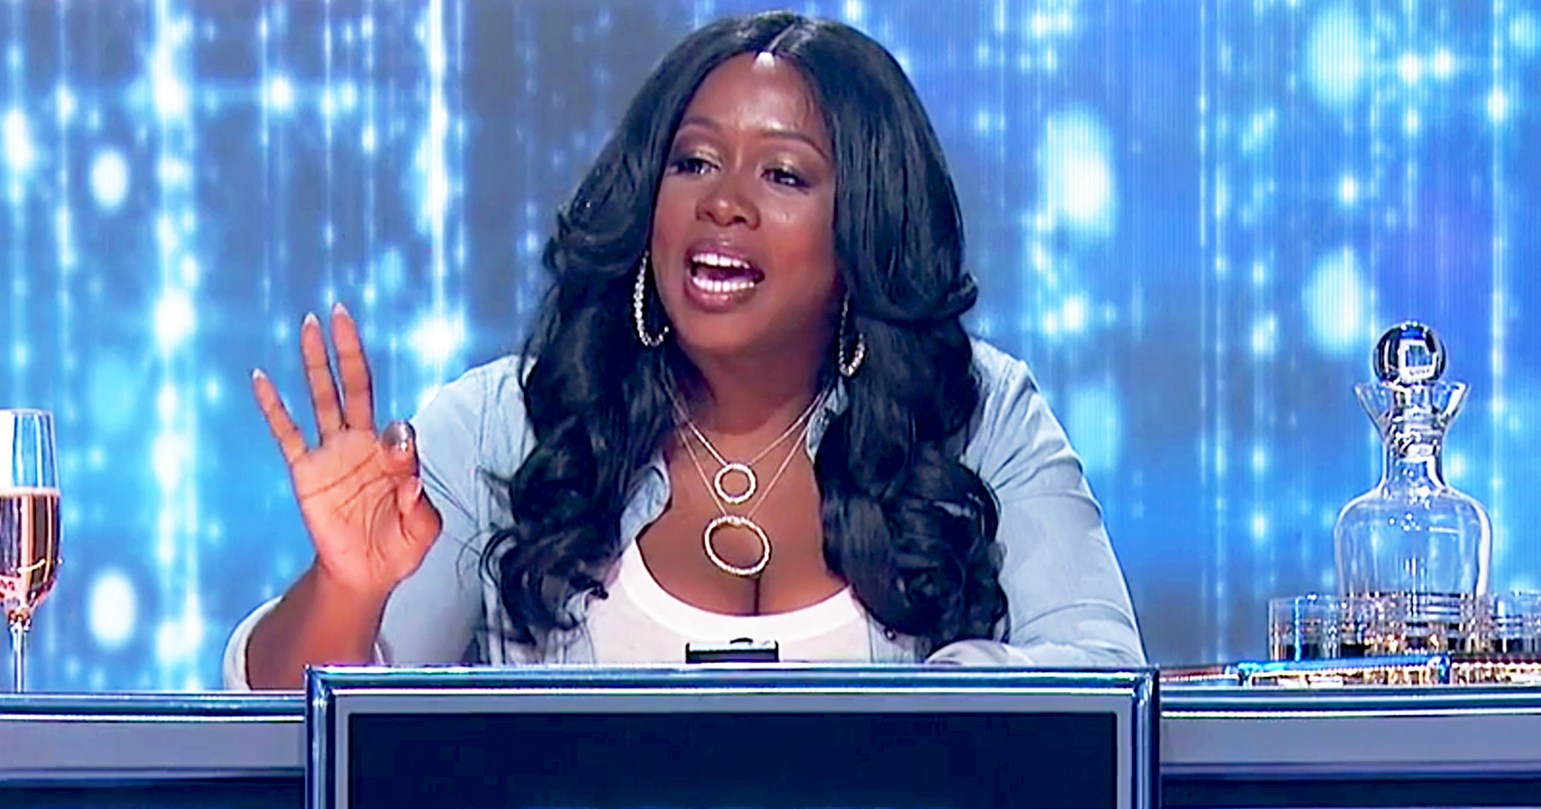 Here's How Remy Ma Reacted When Asked to Finish a Nicki Minaj Lyric on 'Hip Hop Squares'